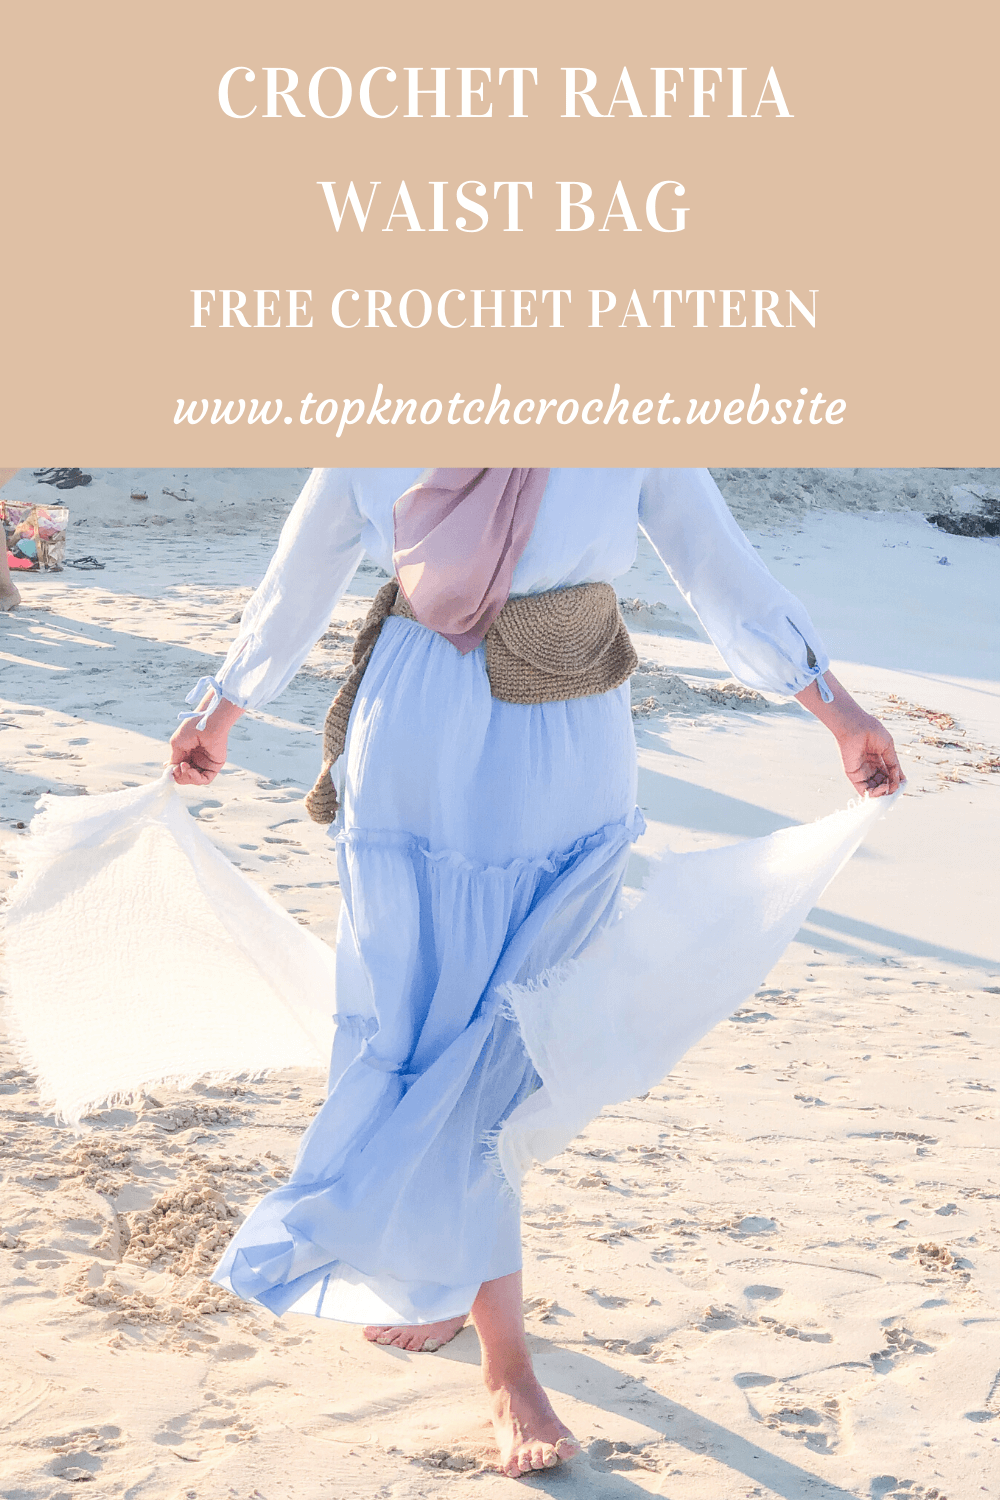 Crochet Raffia waist Bag- Free pattern and Photo tutorial